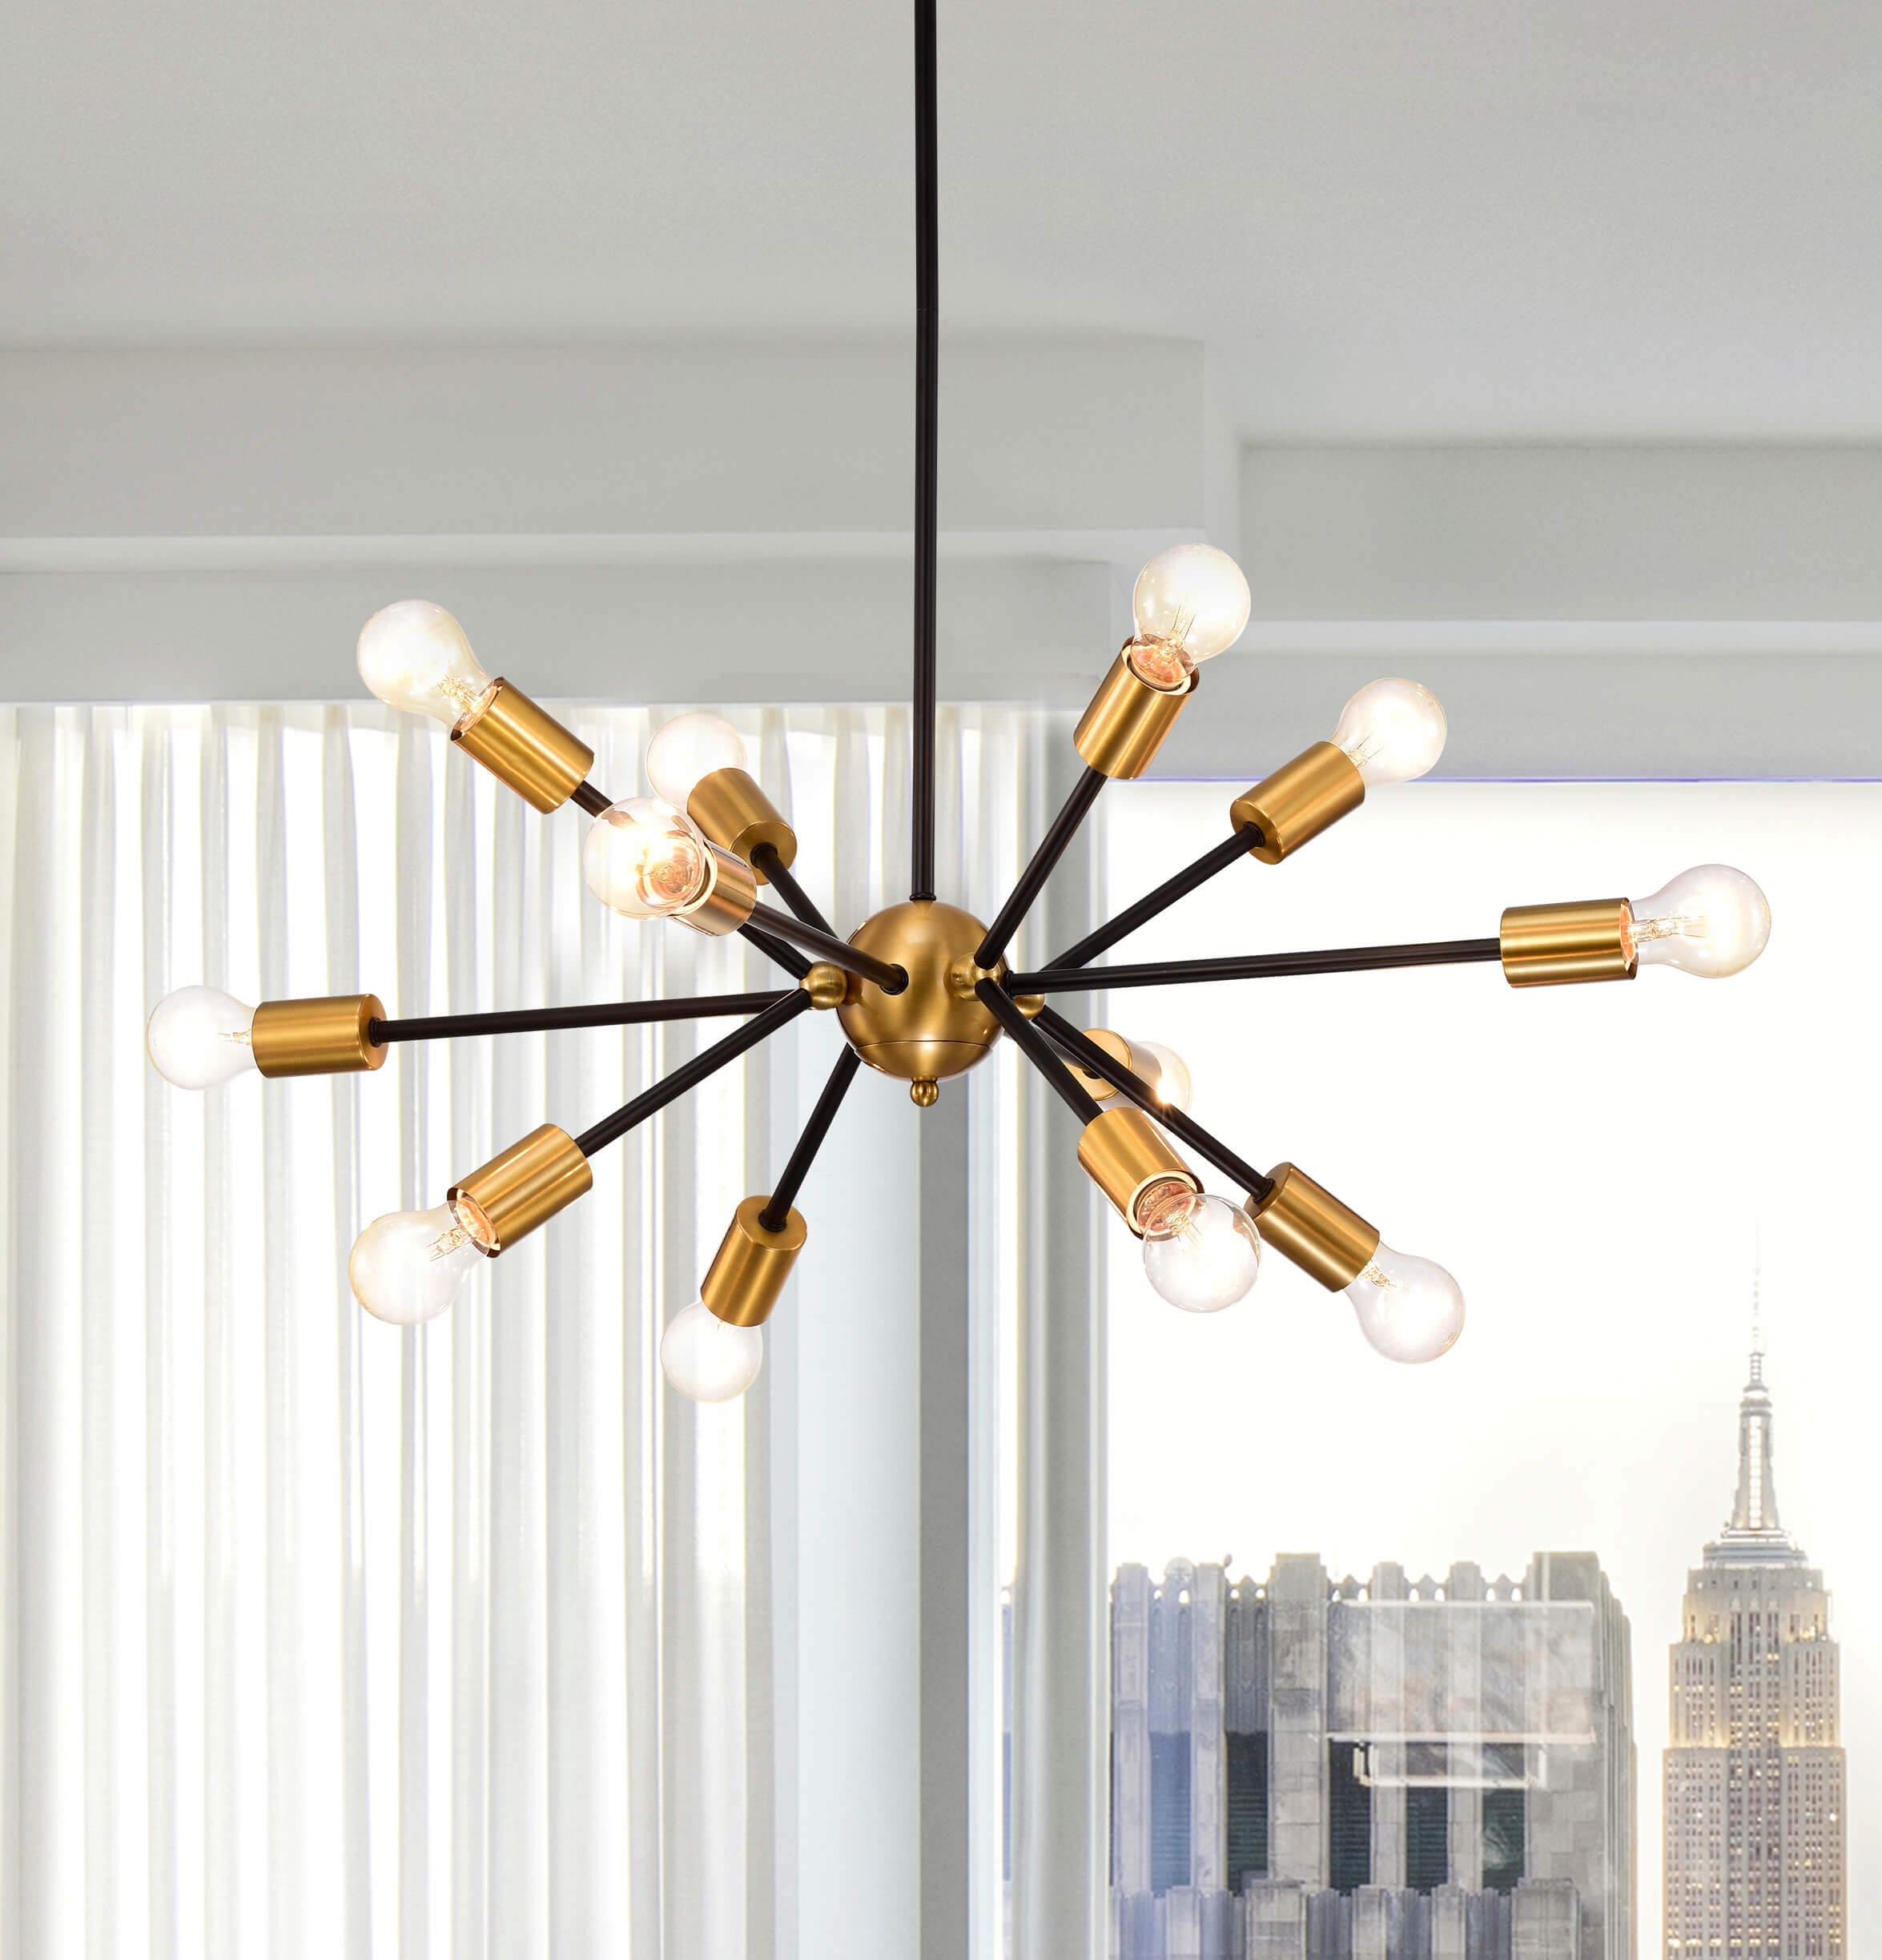 Lorena Sputnik Black Base Metallic Gold Finish Industrial Chandelier FD-5997-QVA